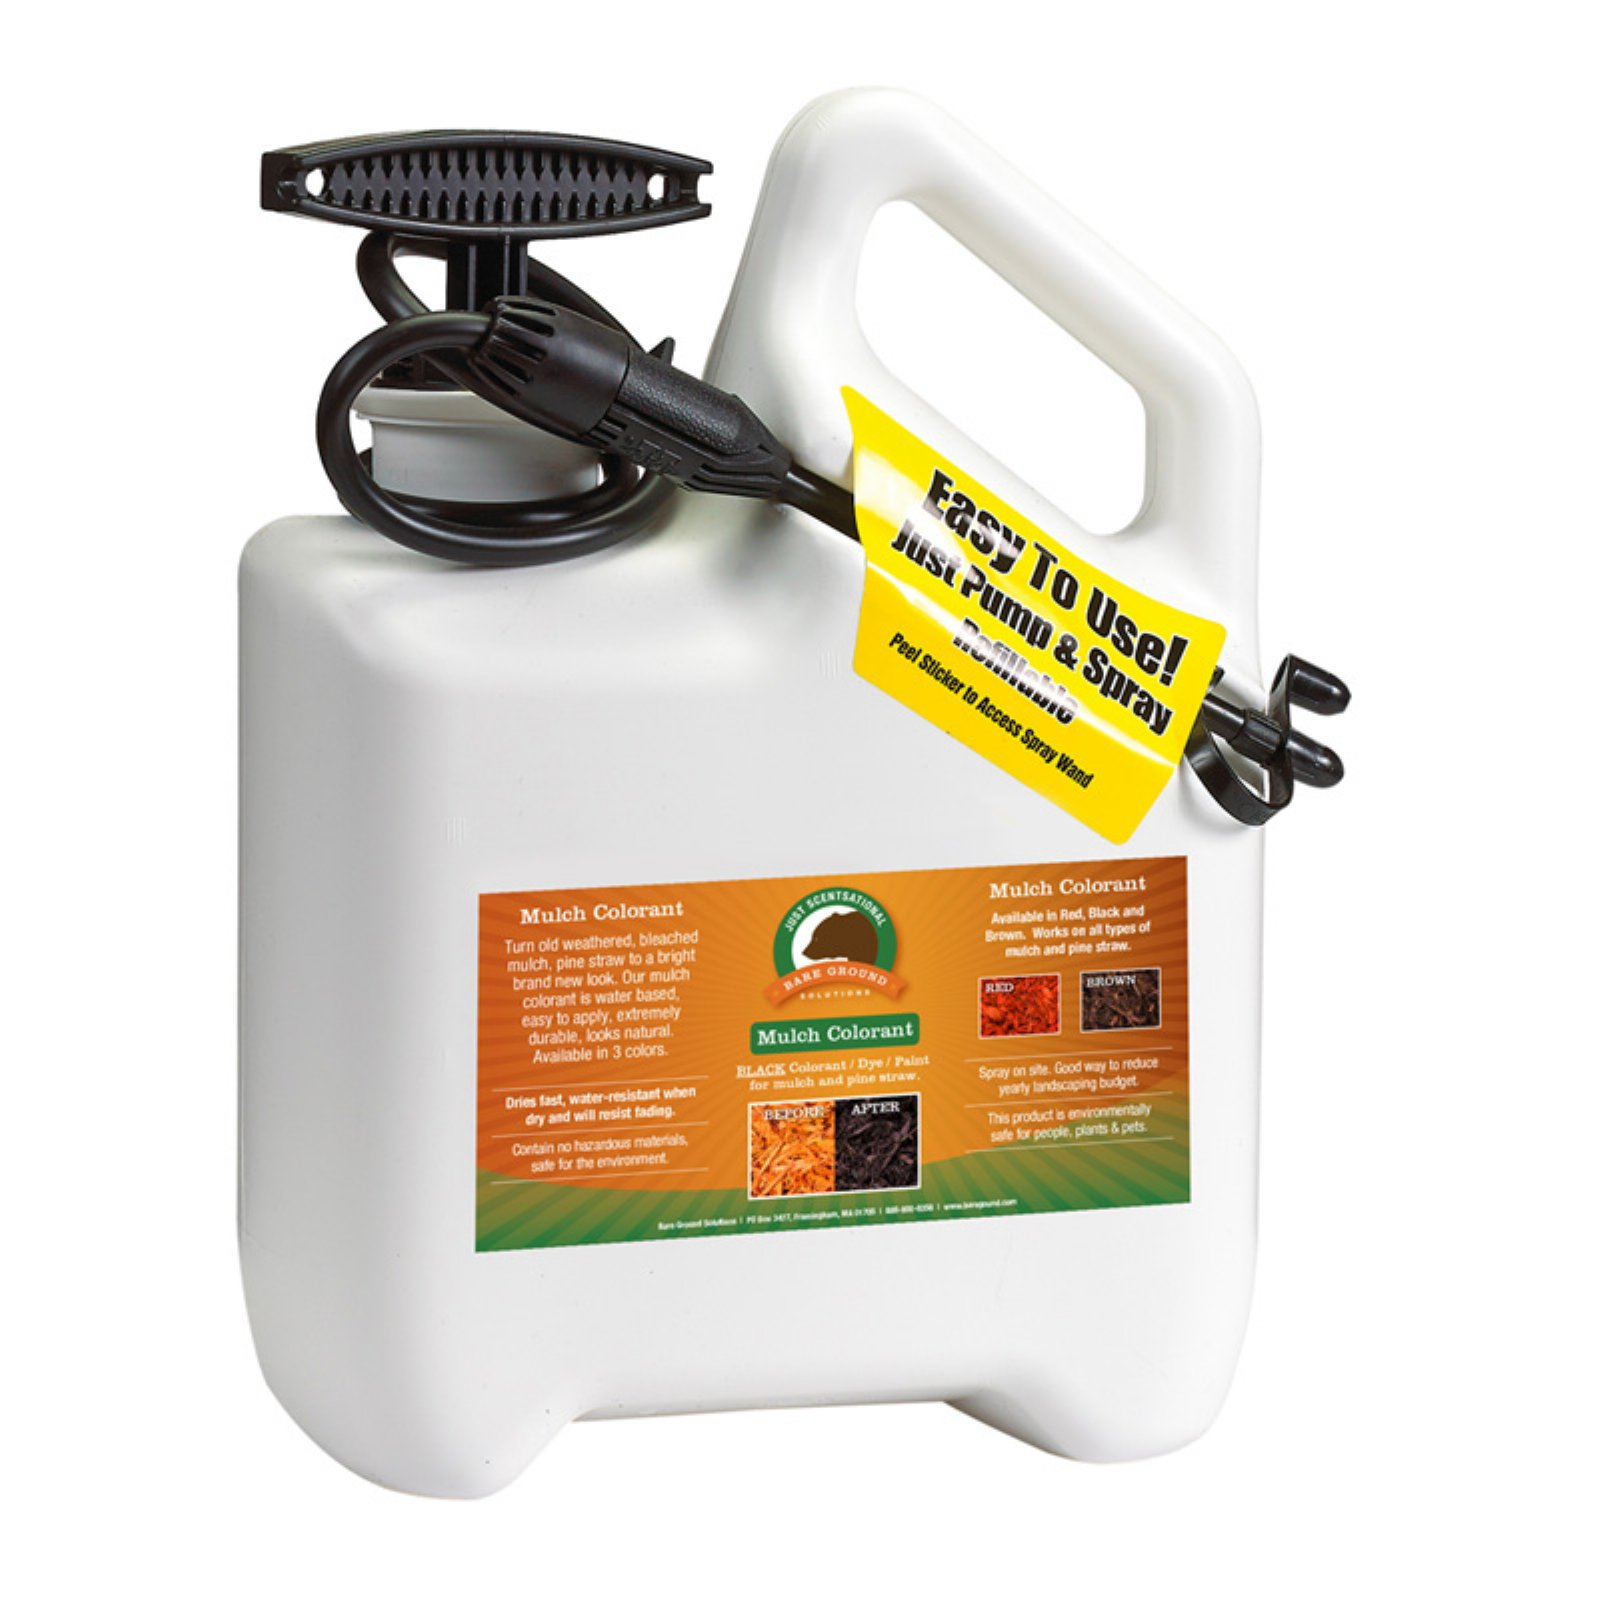 Just Scentsational Mulch Colorant with Pump Sprayer by Bare Ground